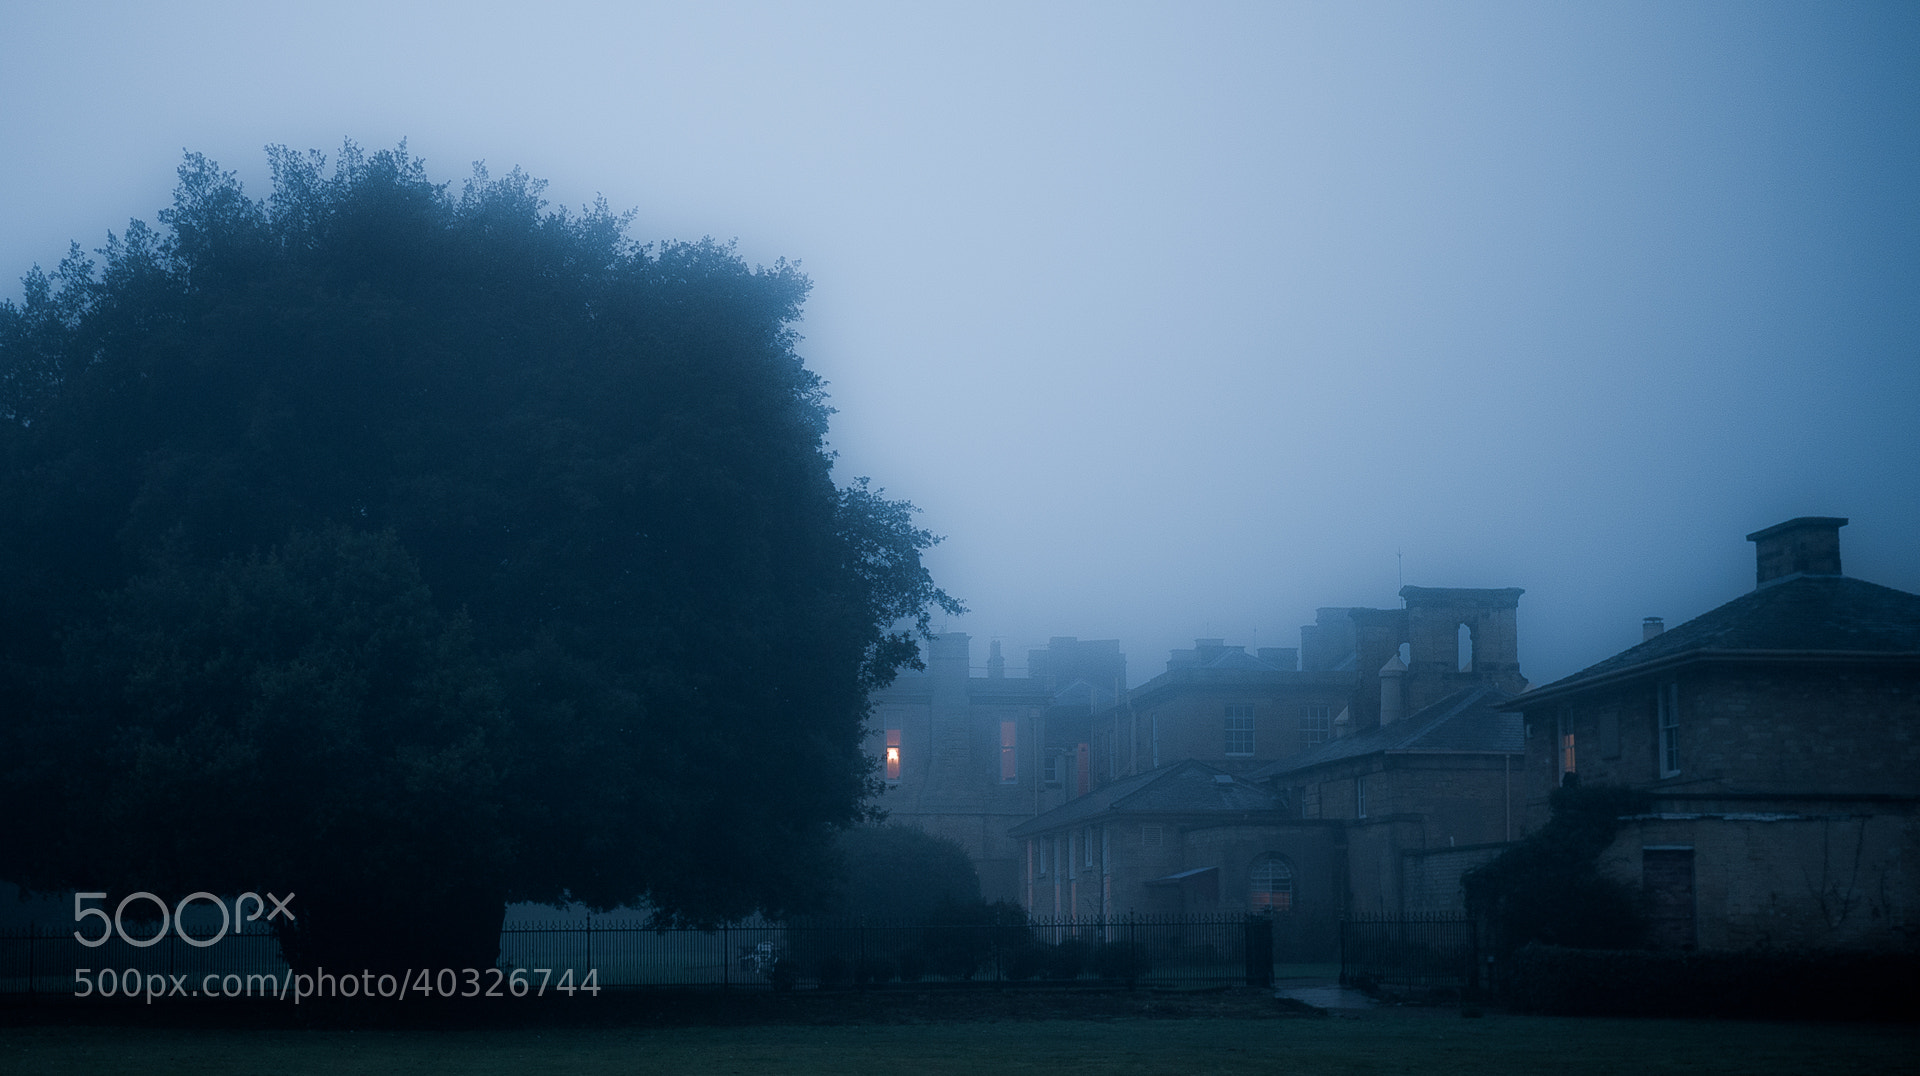 Photograph Bowcliffe Hall by Paul Simon on 500px